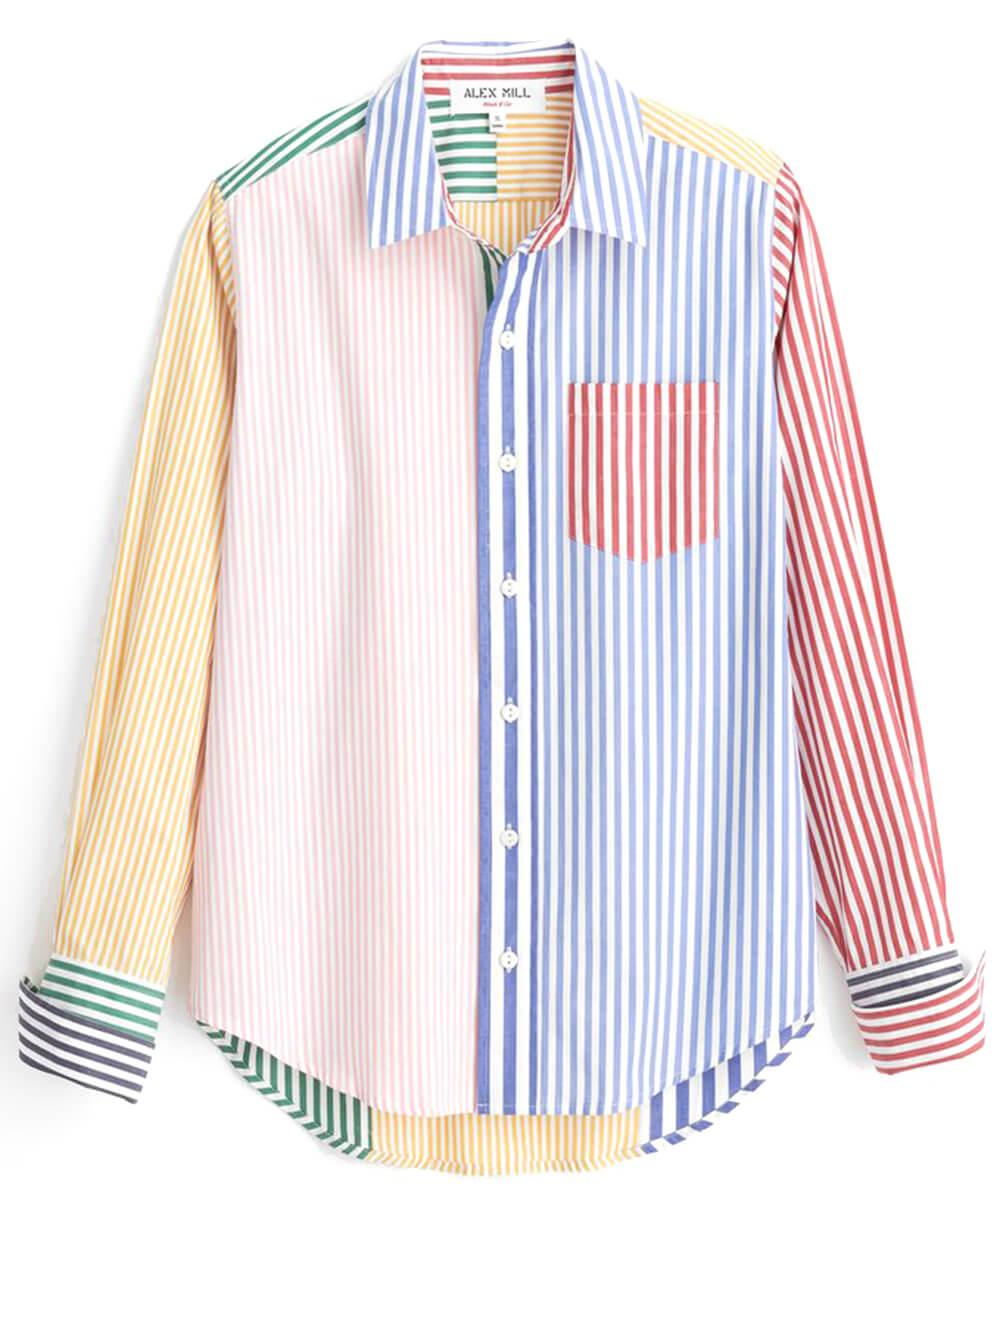 Mixed Stripe Whatt Shirt